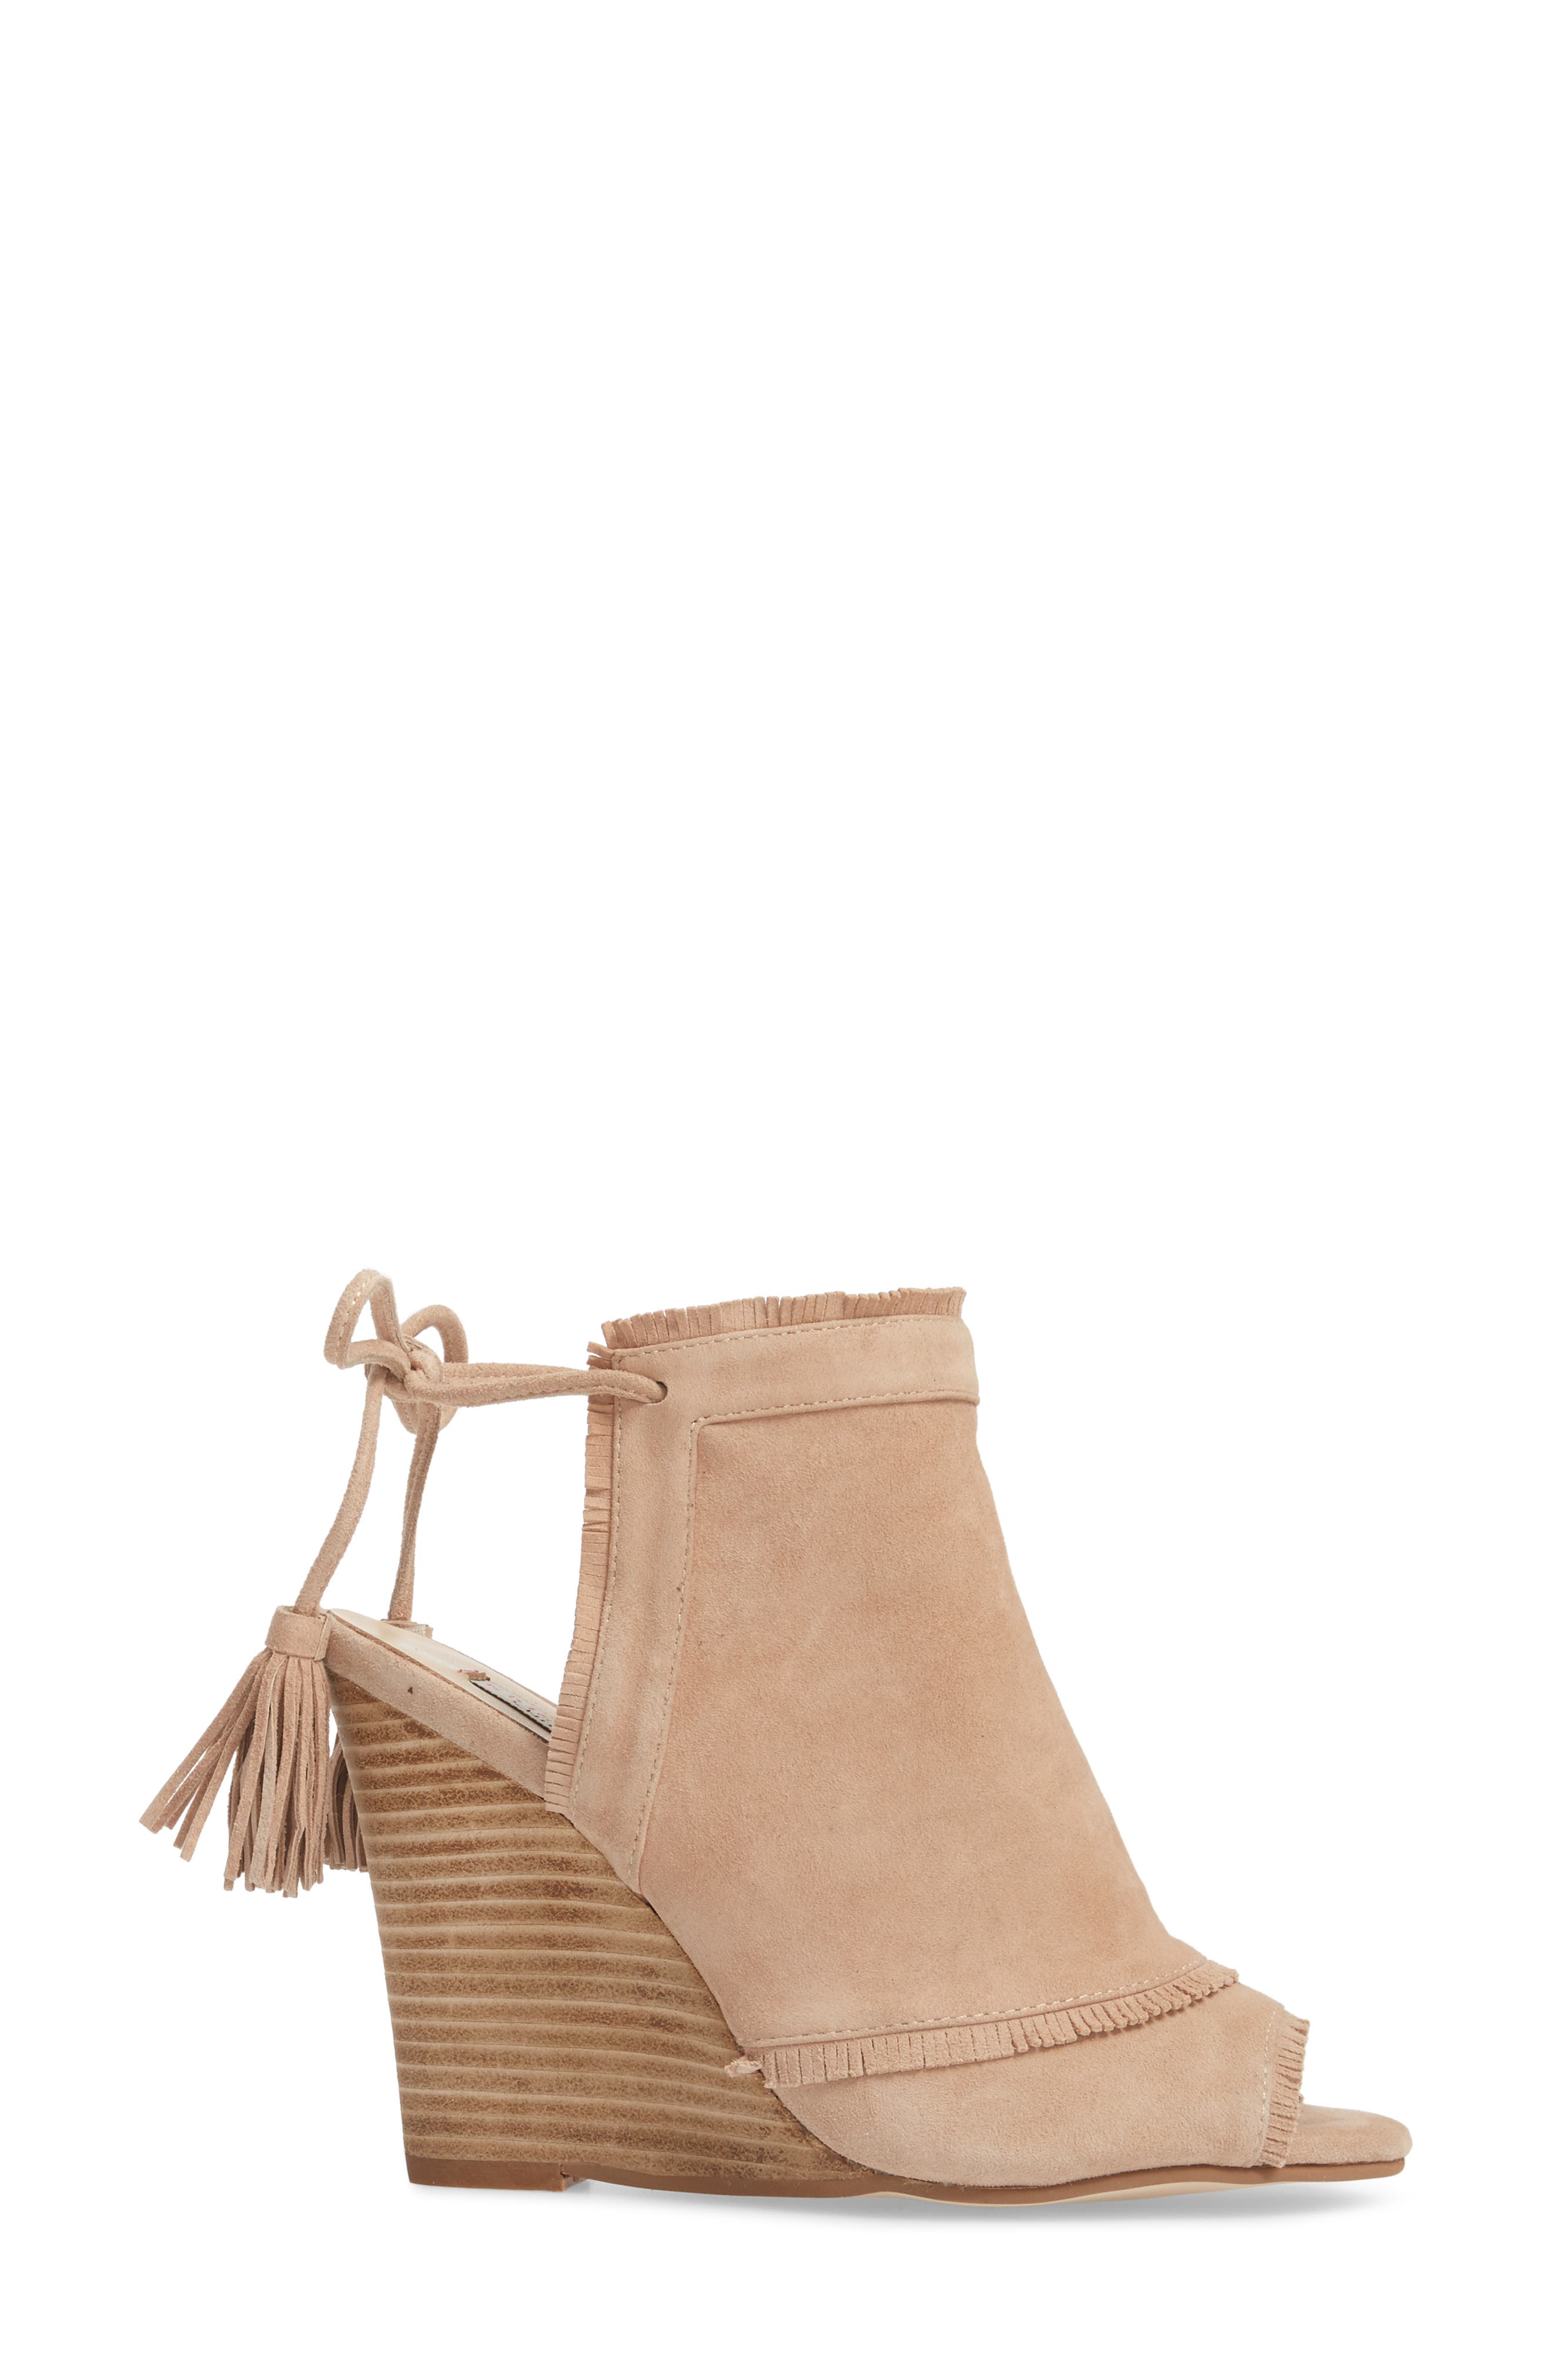 Leilani Wedge,                             Alternate thumbnail 3, color,                             Tigers Eye Suede